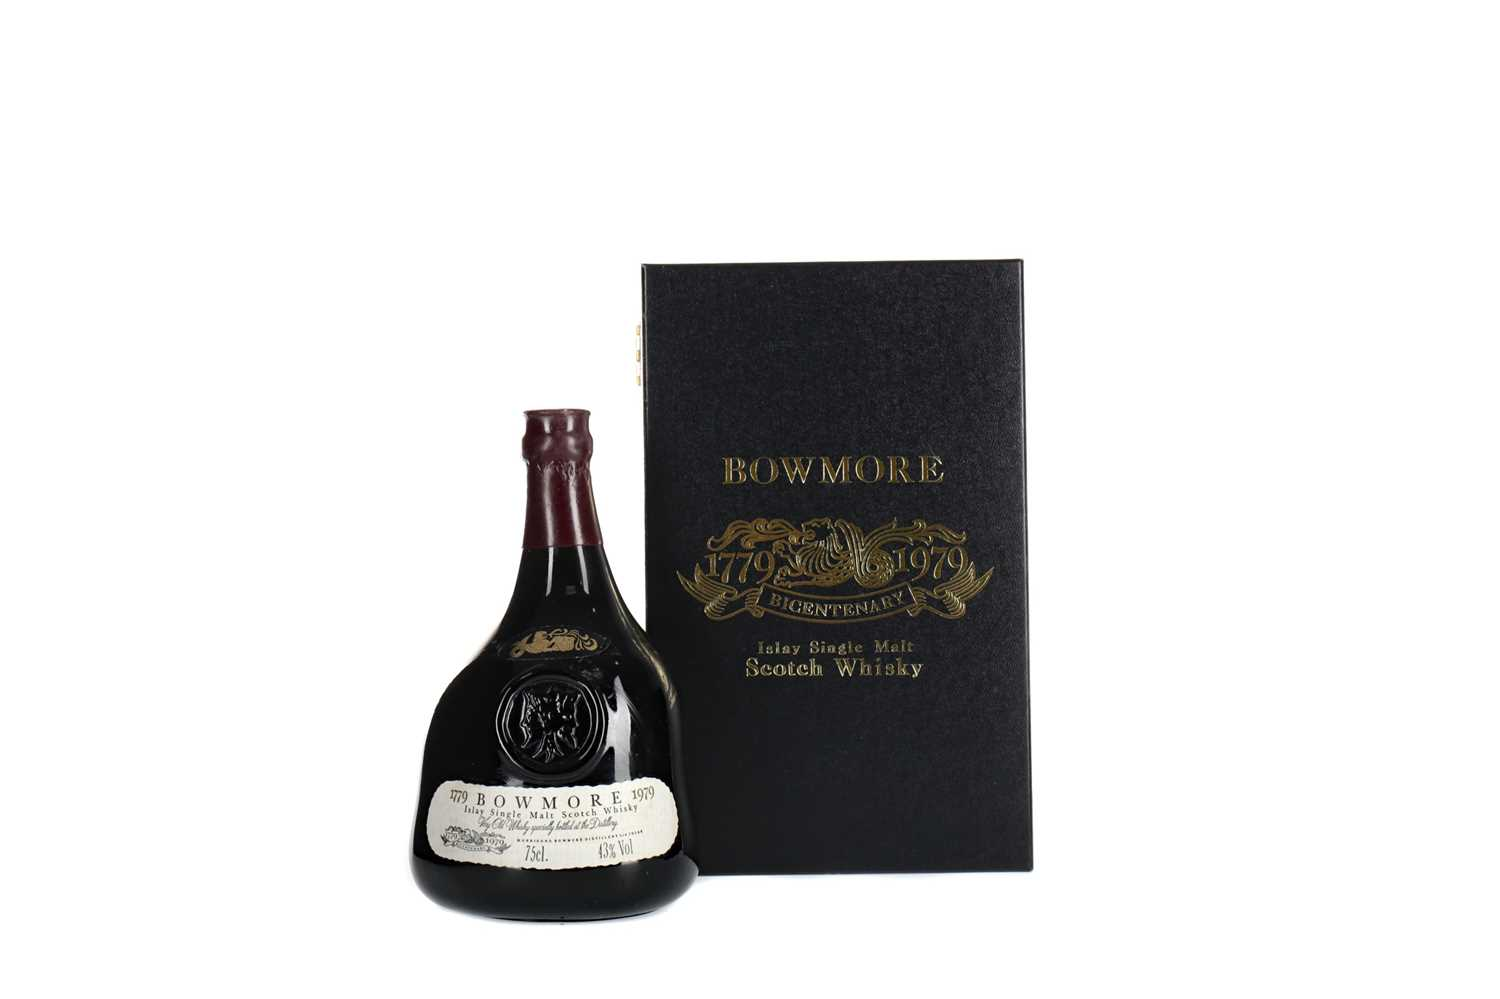 Lot 91 - BOWMORE BICENTENARY 1779-1979